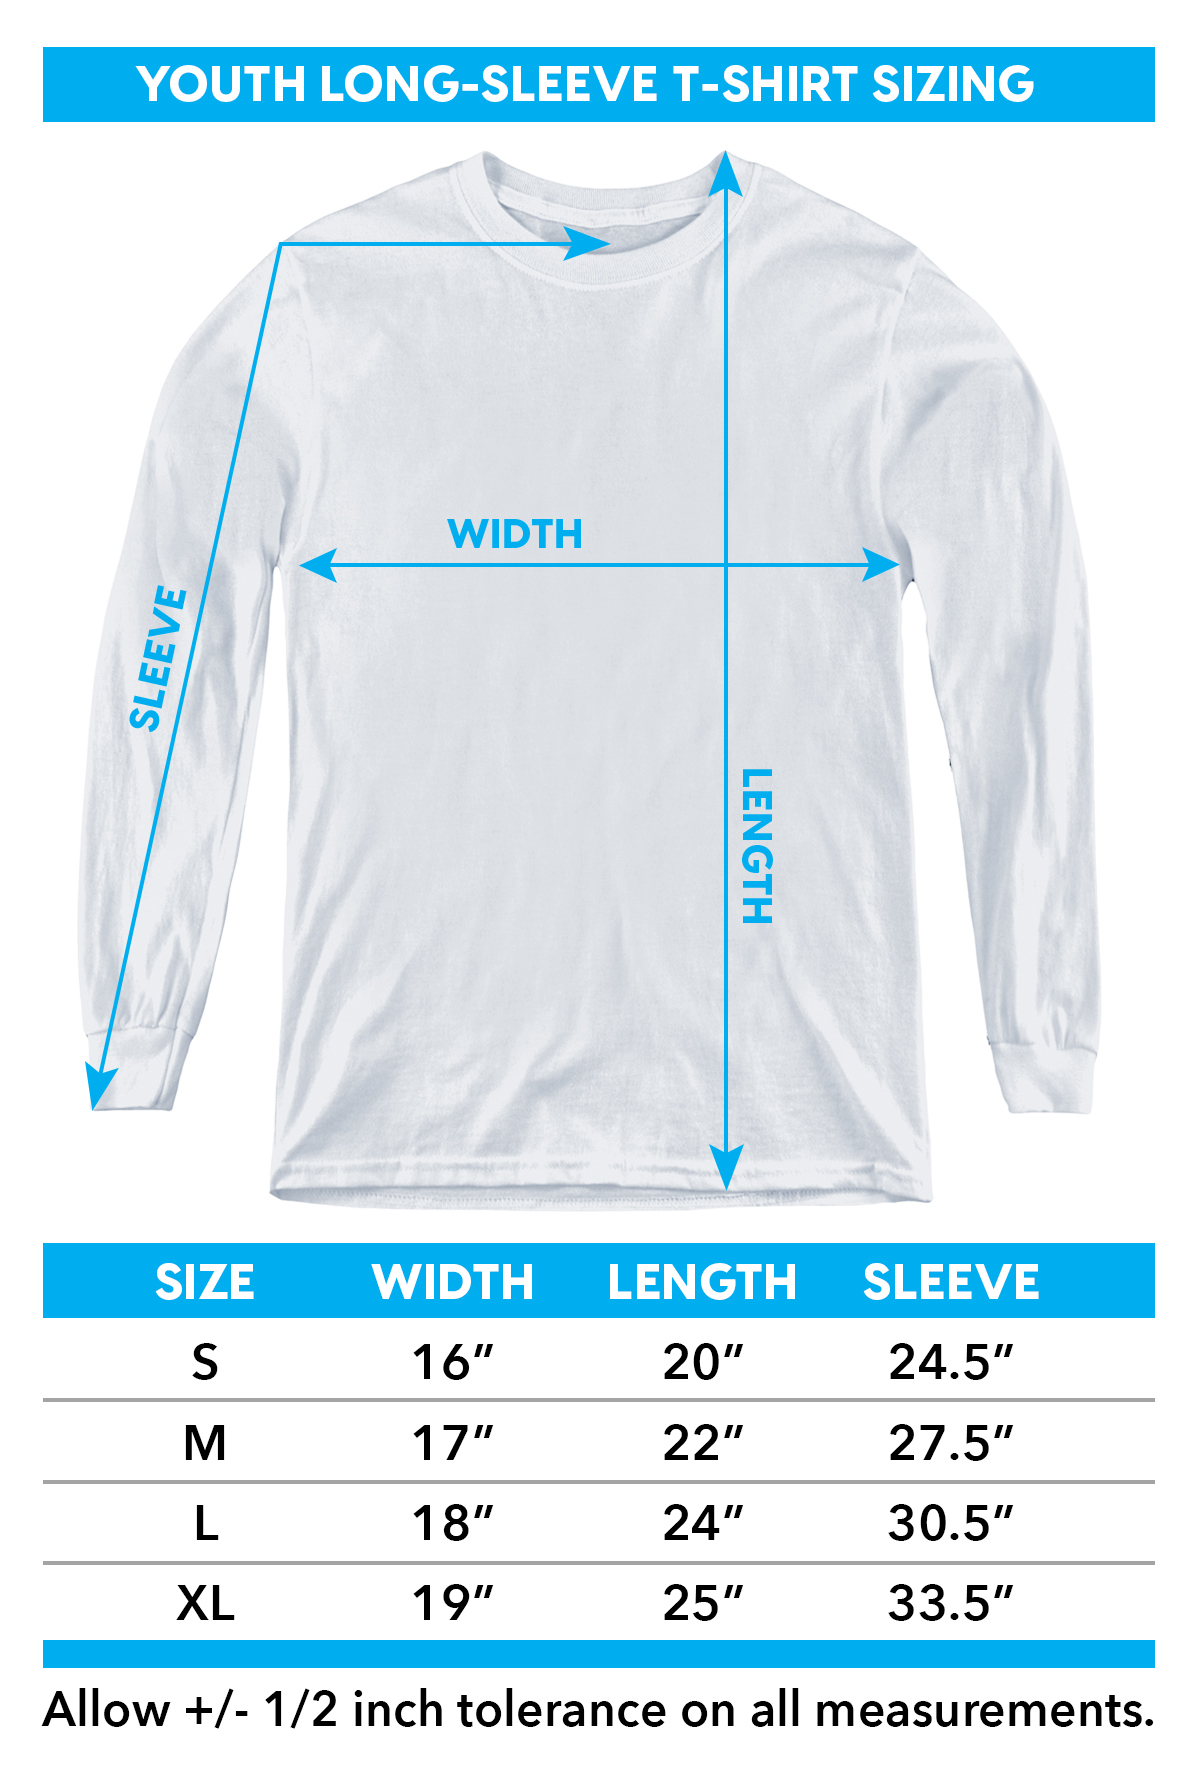 Sizing chart for Rai Youth Long Sleeve T-Shirt - Japanese Print TRV-VAL176-YT